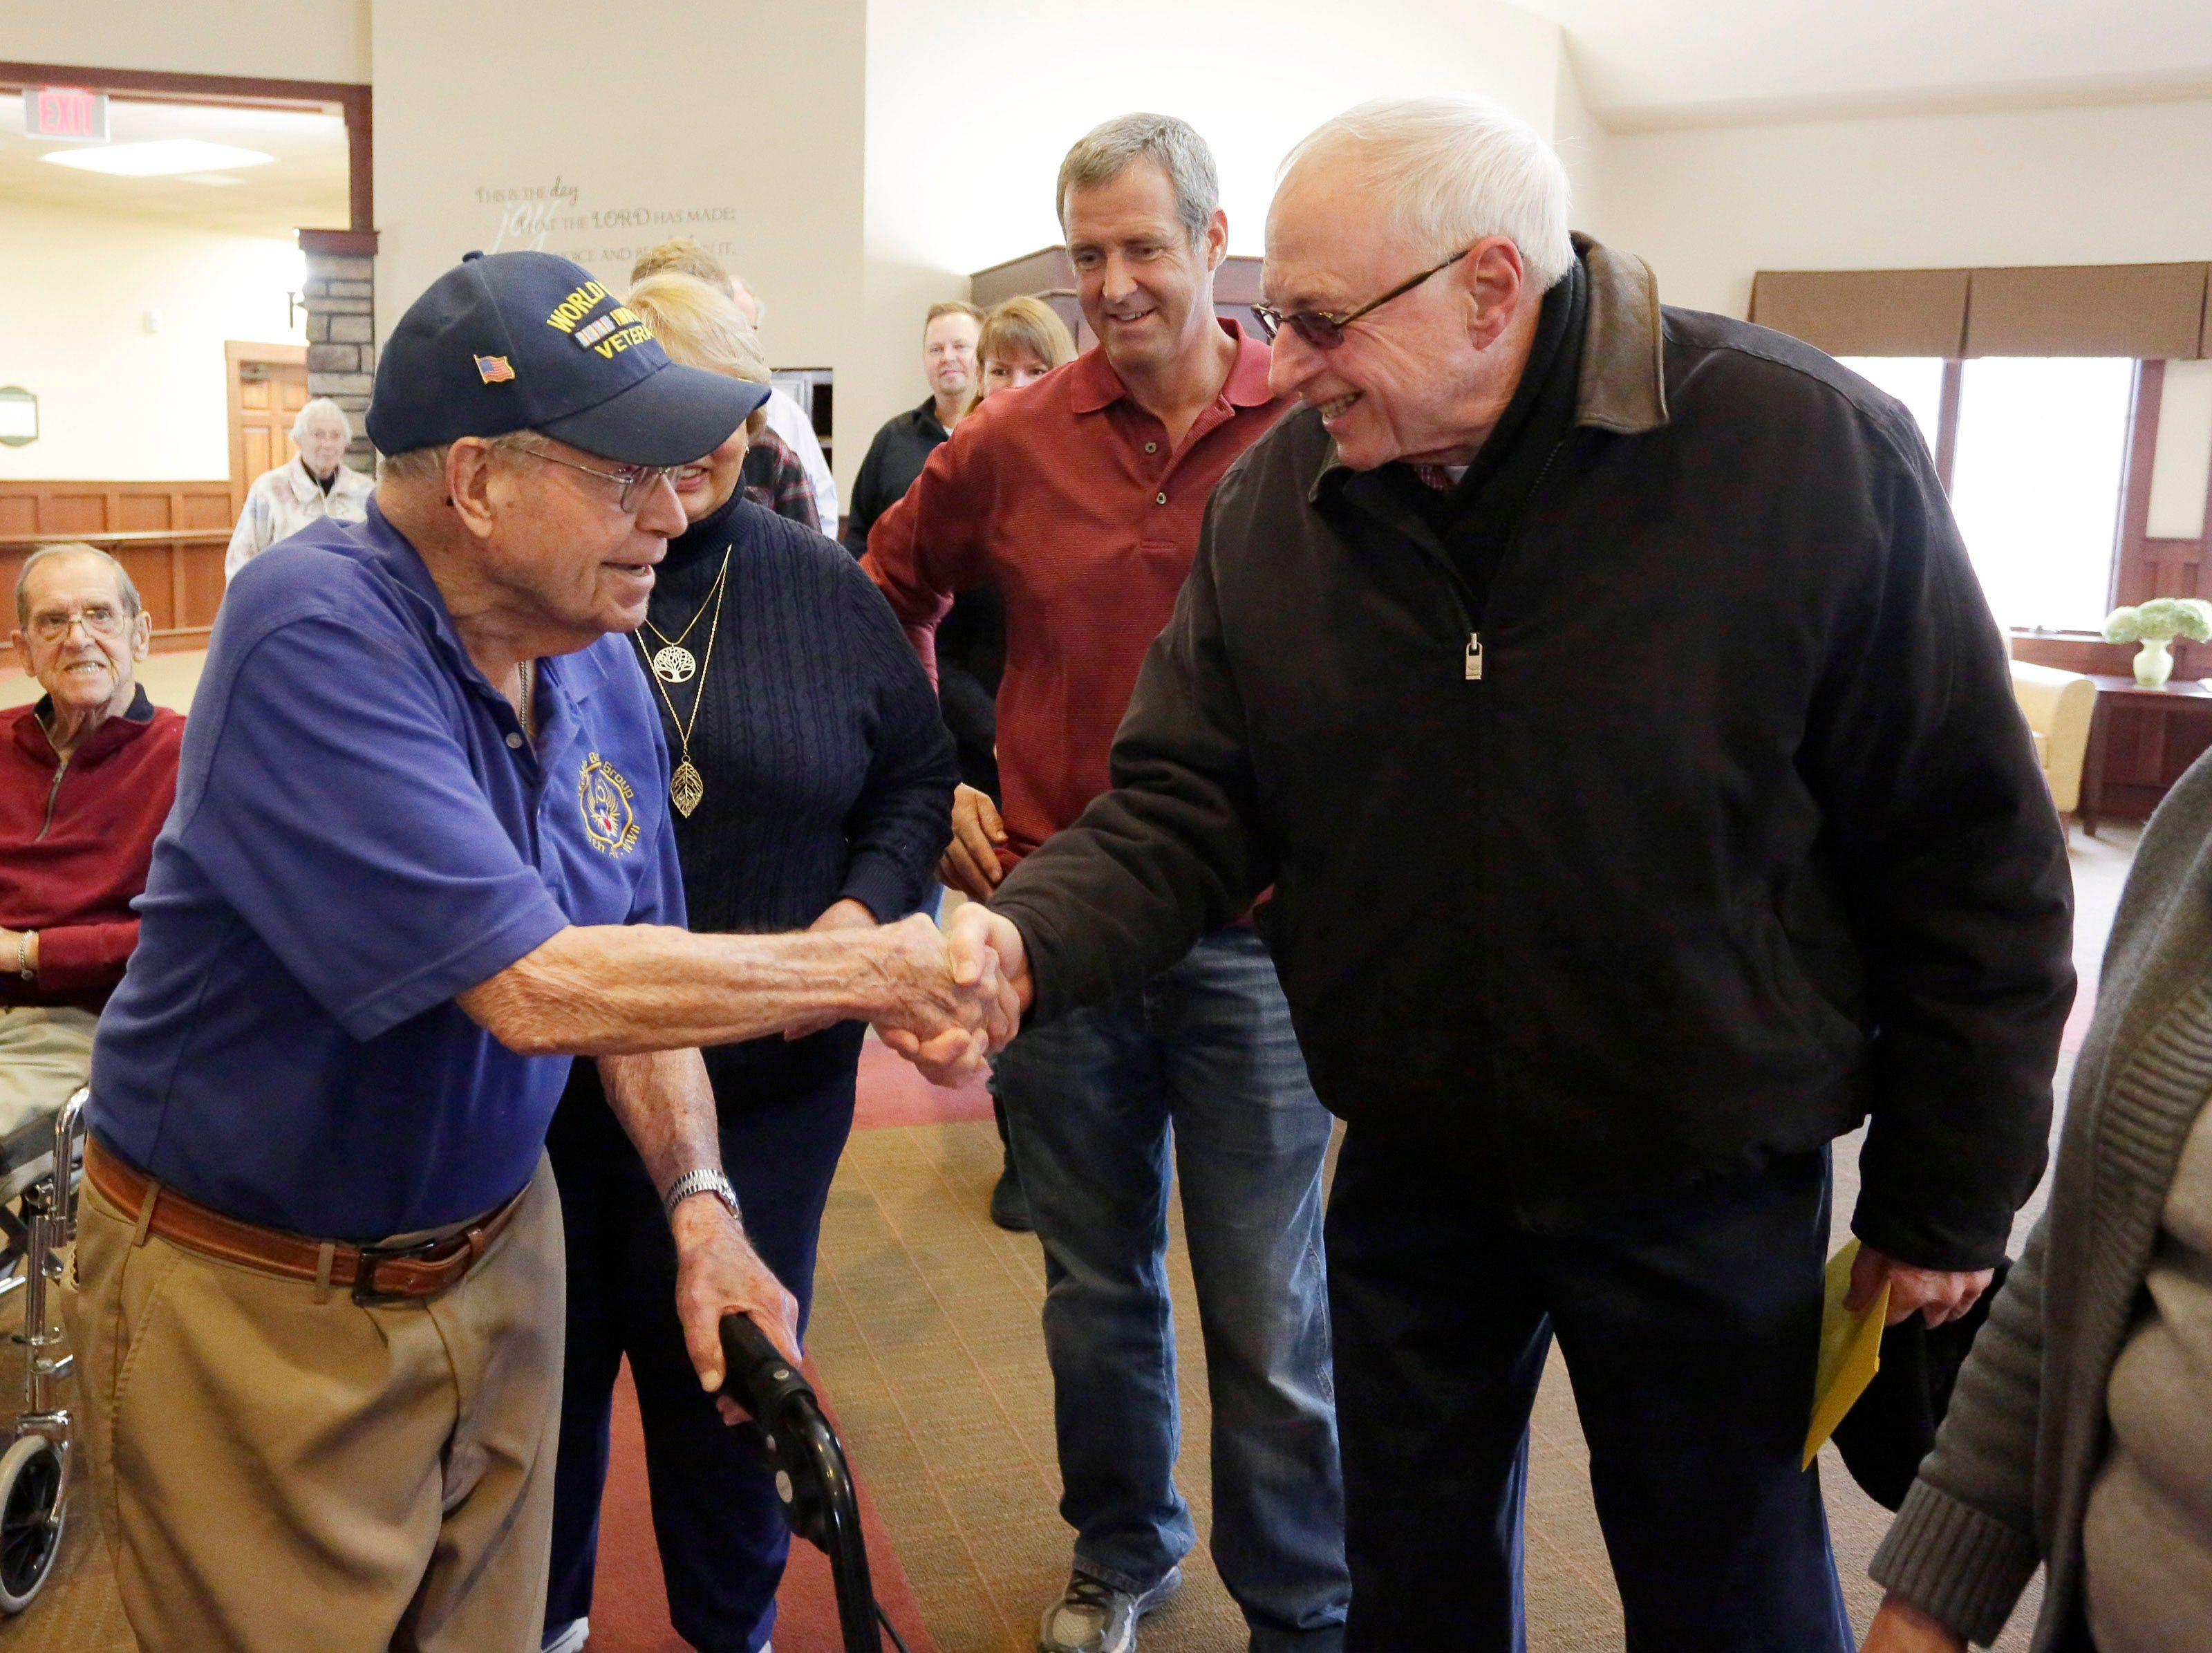 Oostburg resident Don Harder, left, greets Jim Eckwielen of Oostburg during a celebration of Harder's 100th birthday, Friday January 18, 2019, 2019, at Pine Haven Christian Communities in Oostburg, Wis.